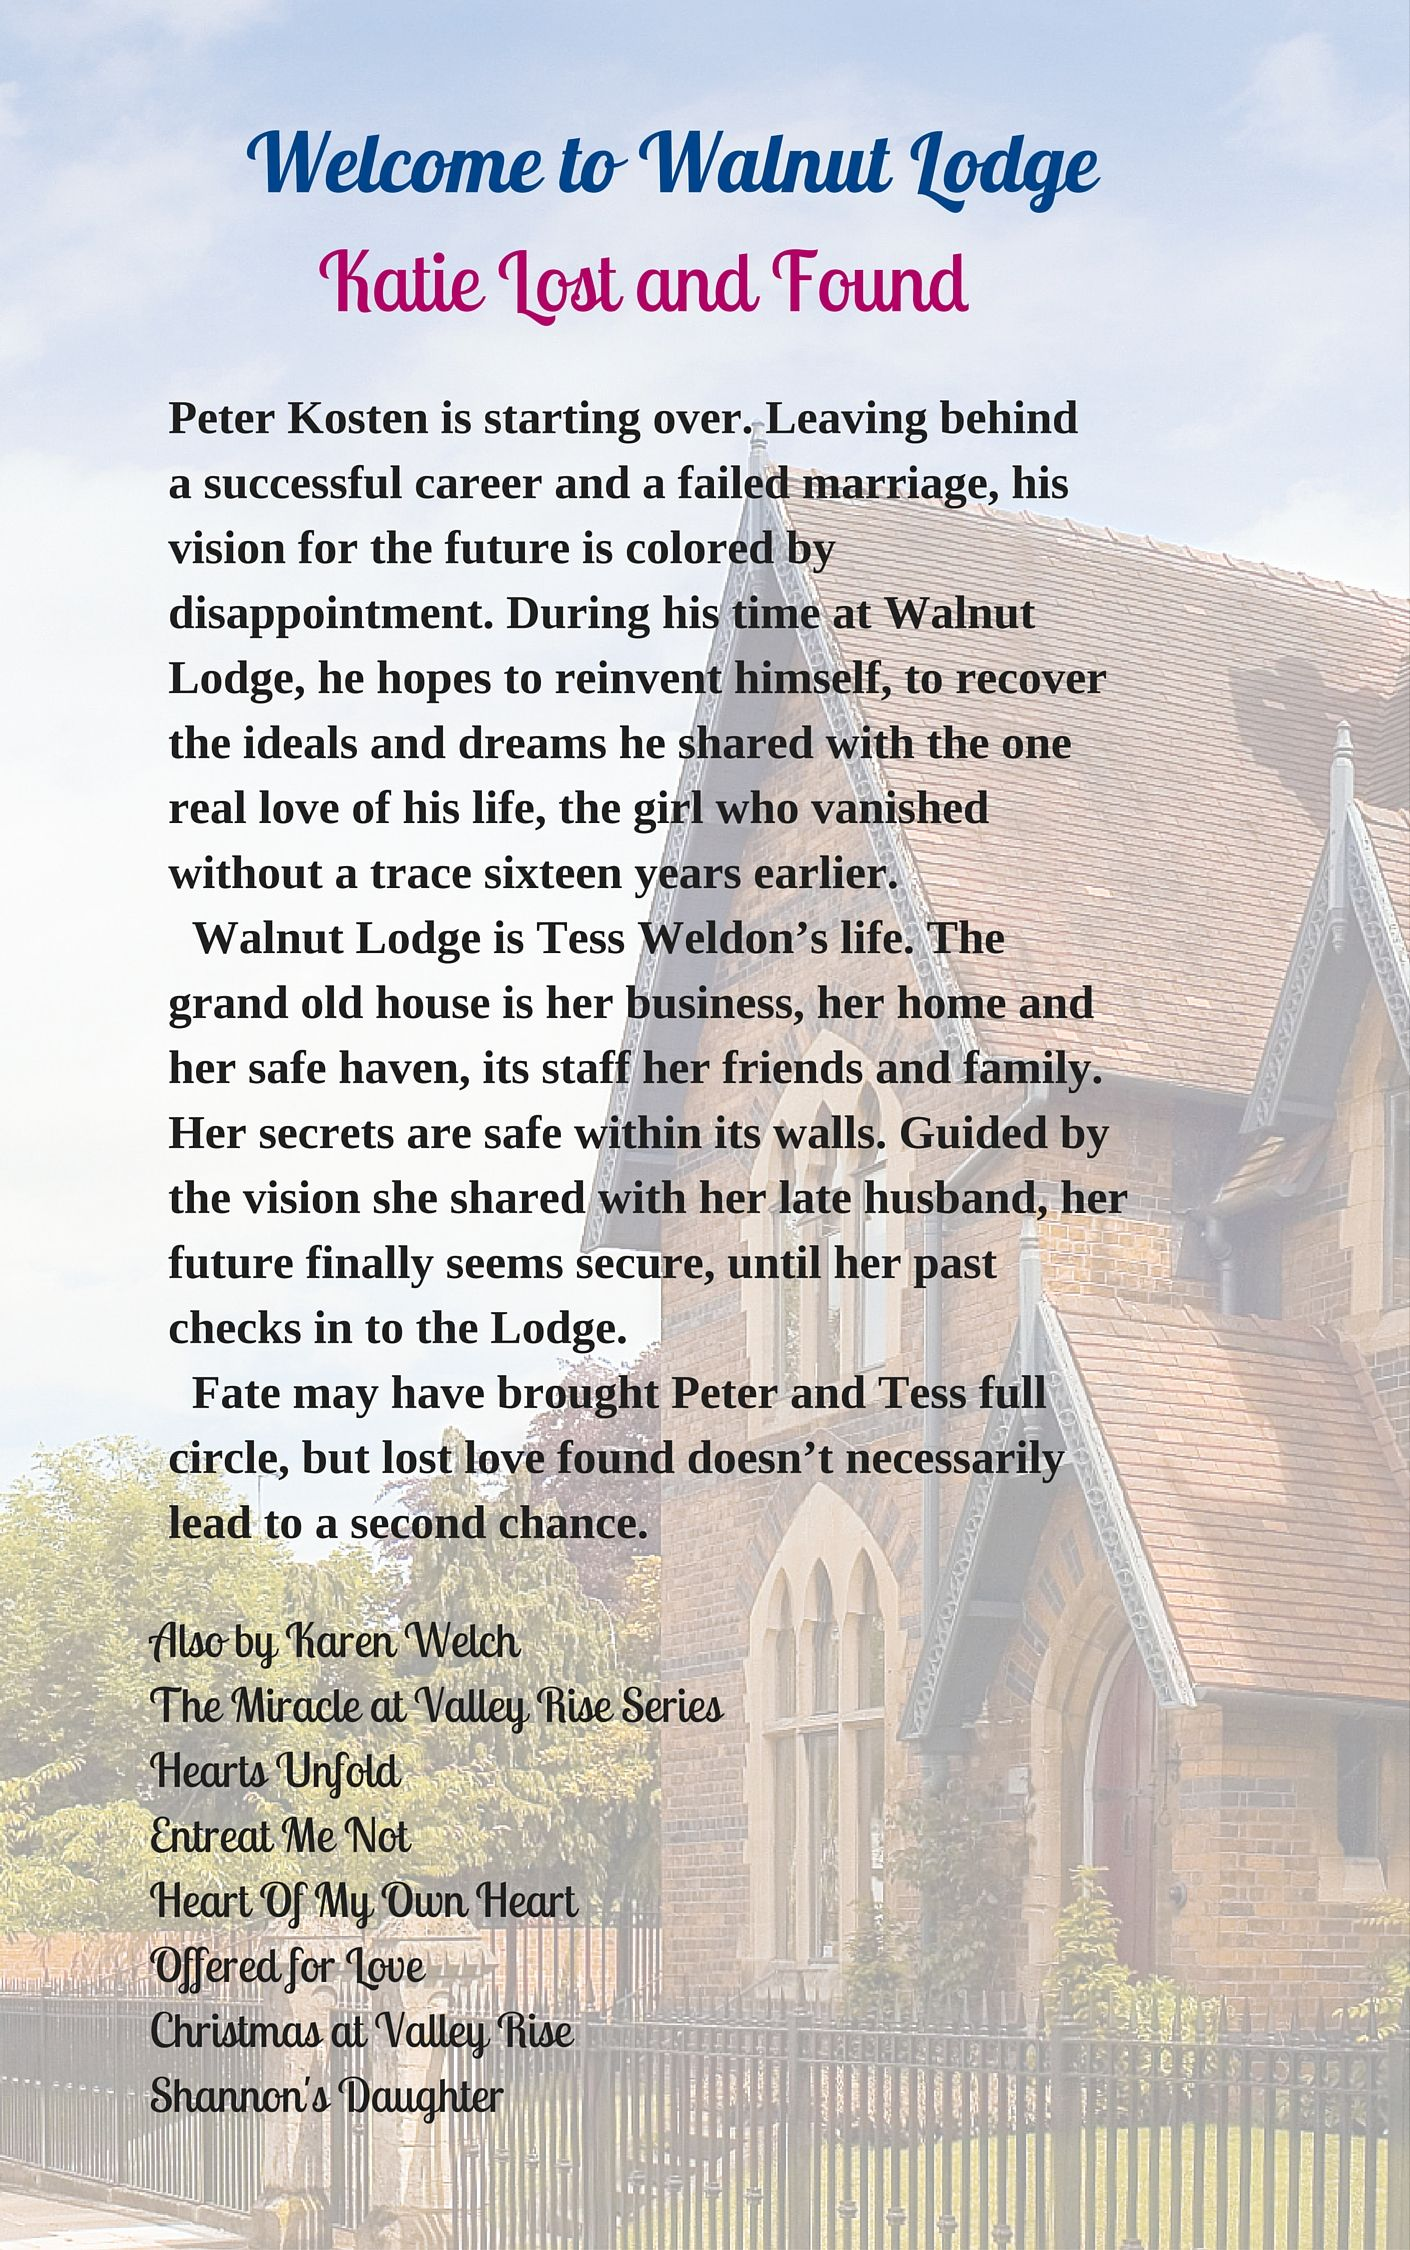 Back cover with an image of what might be Walnut Lodge.